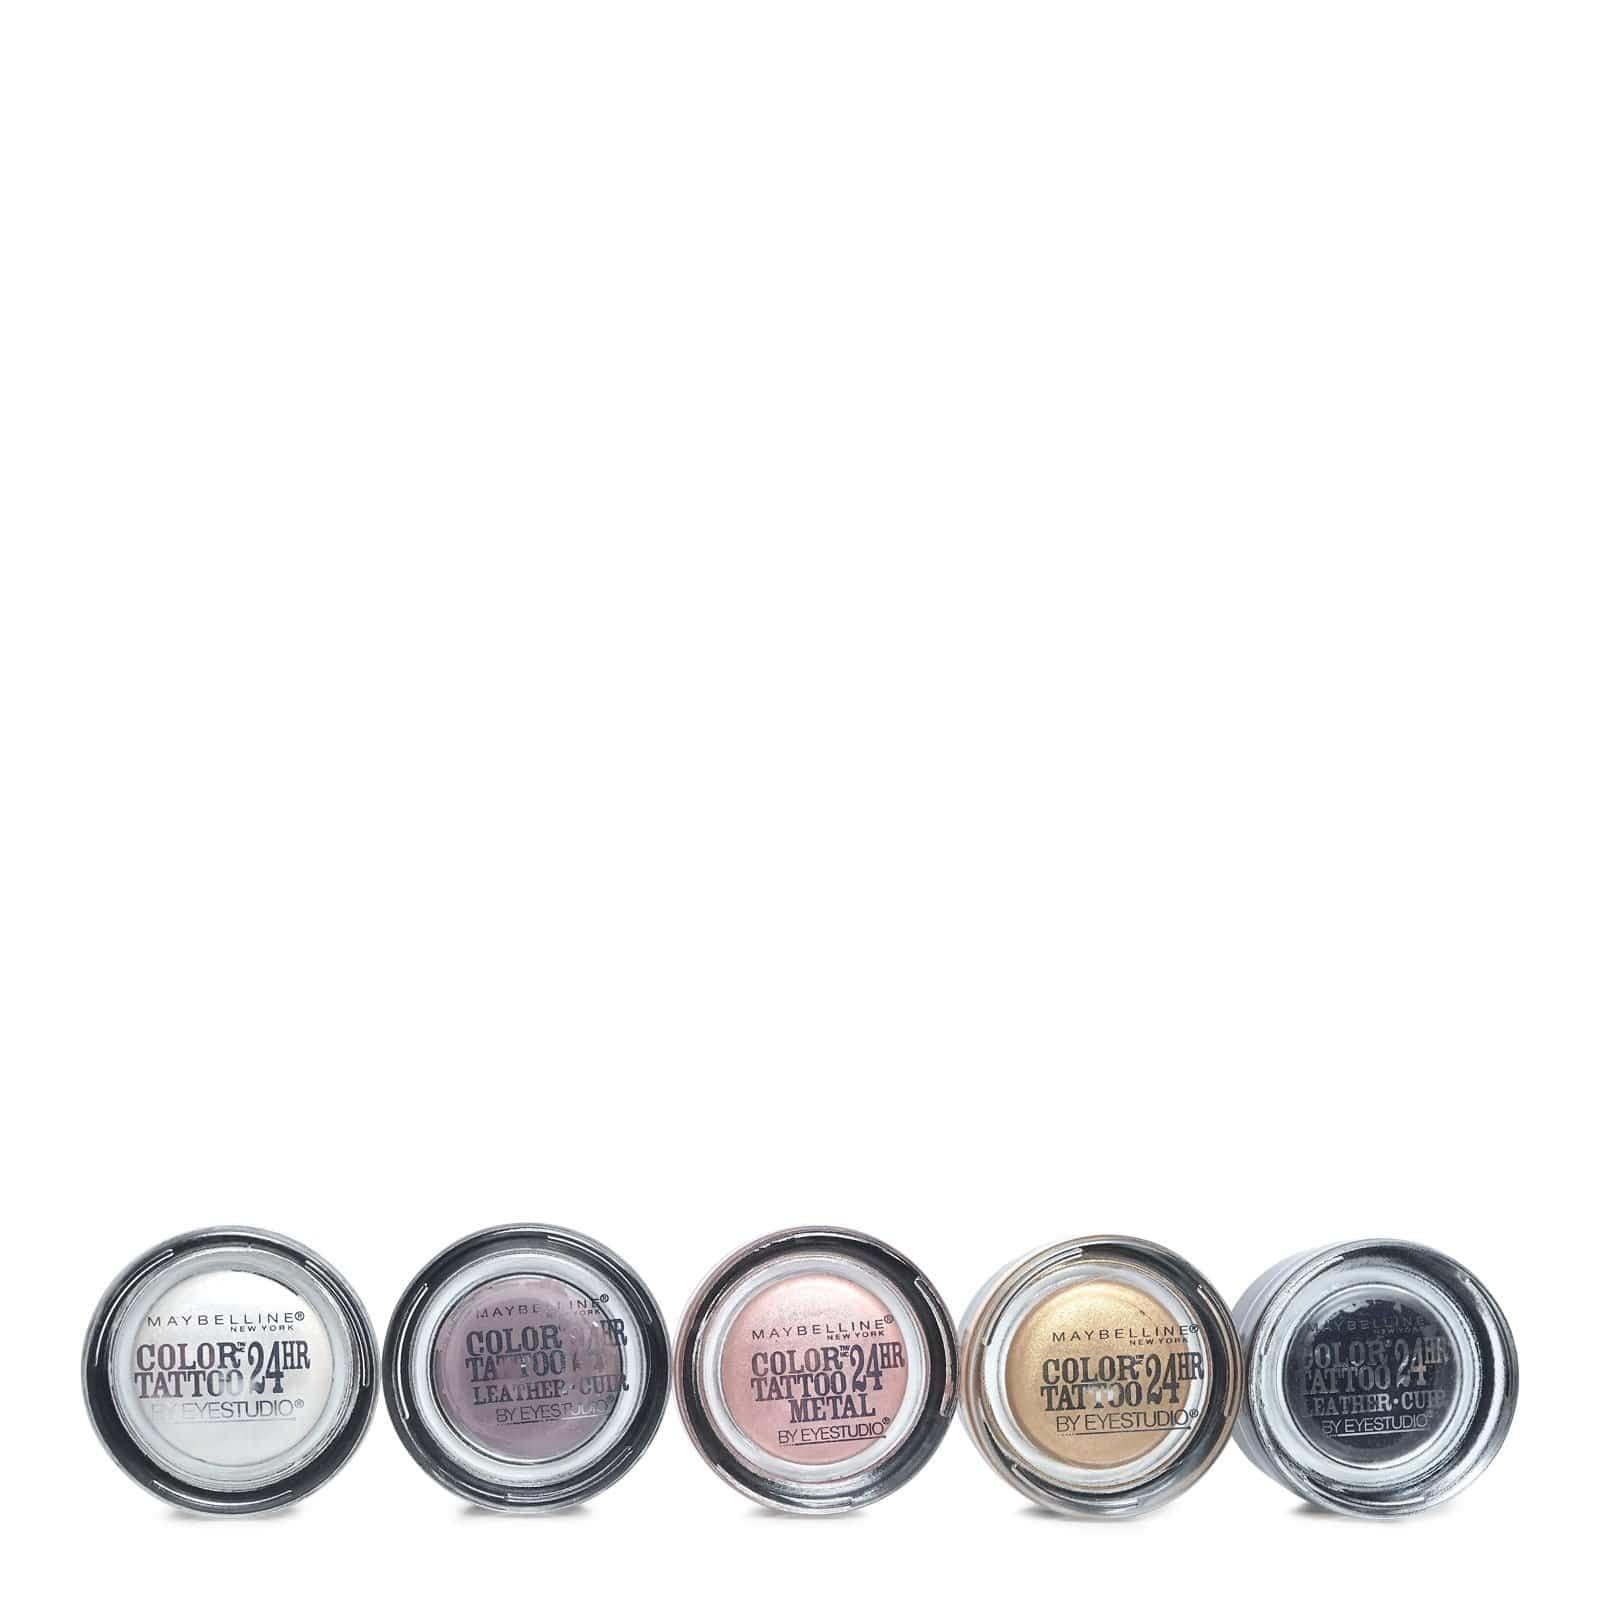 Maybelline Eyestudio Color Tattoo Assortment -  Shimmery, metallic colors.  (24/cs)